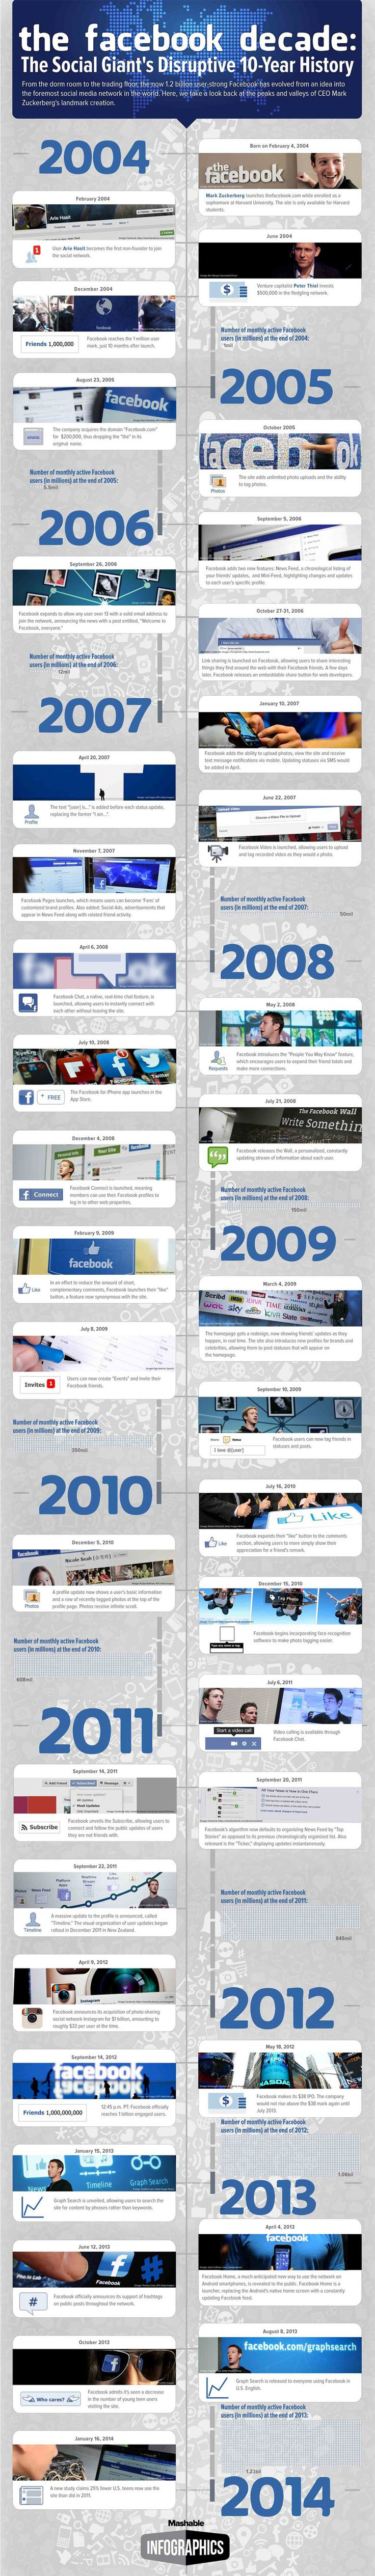 10 Years of #Facebook, the history of a Social Giant an infographic - http://hosting.ber-art.nl/facebook-social-giant /@Ber|Art Visual Design V.O.F. - #SEO